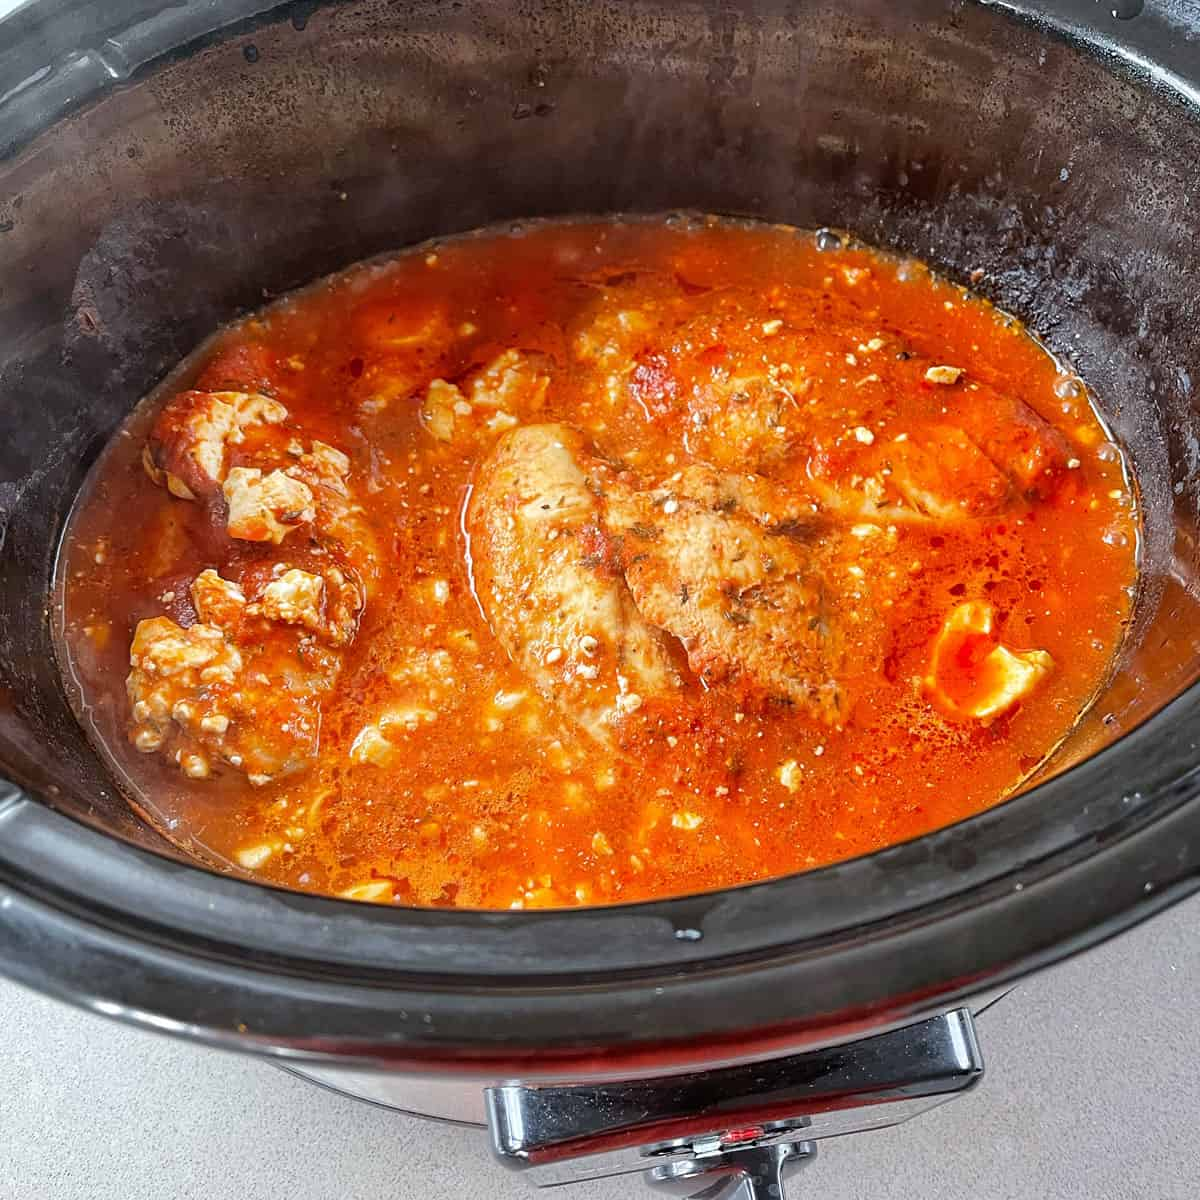 Shredded chicken cooking in the slow cooker